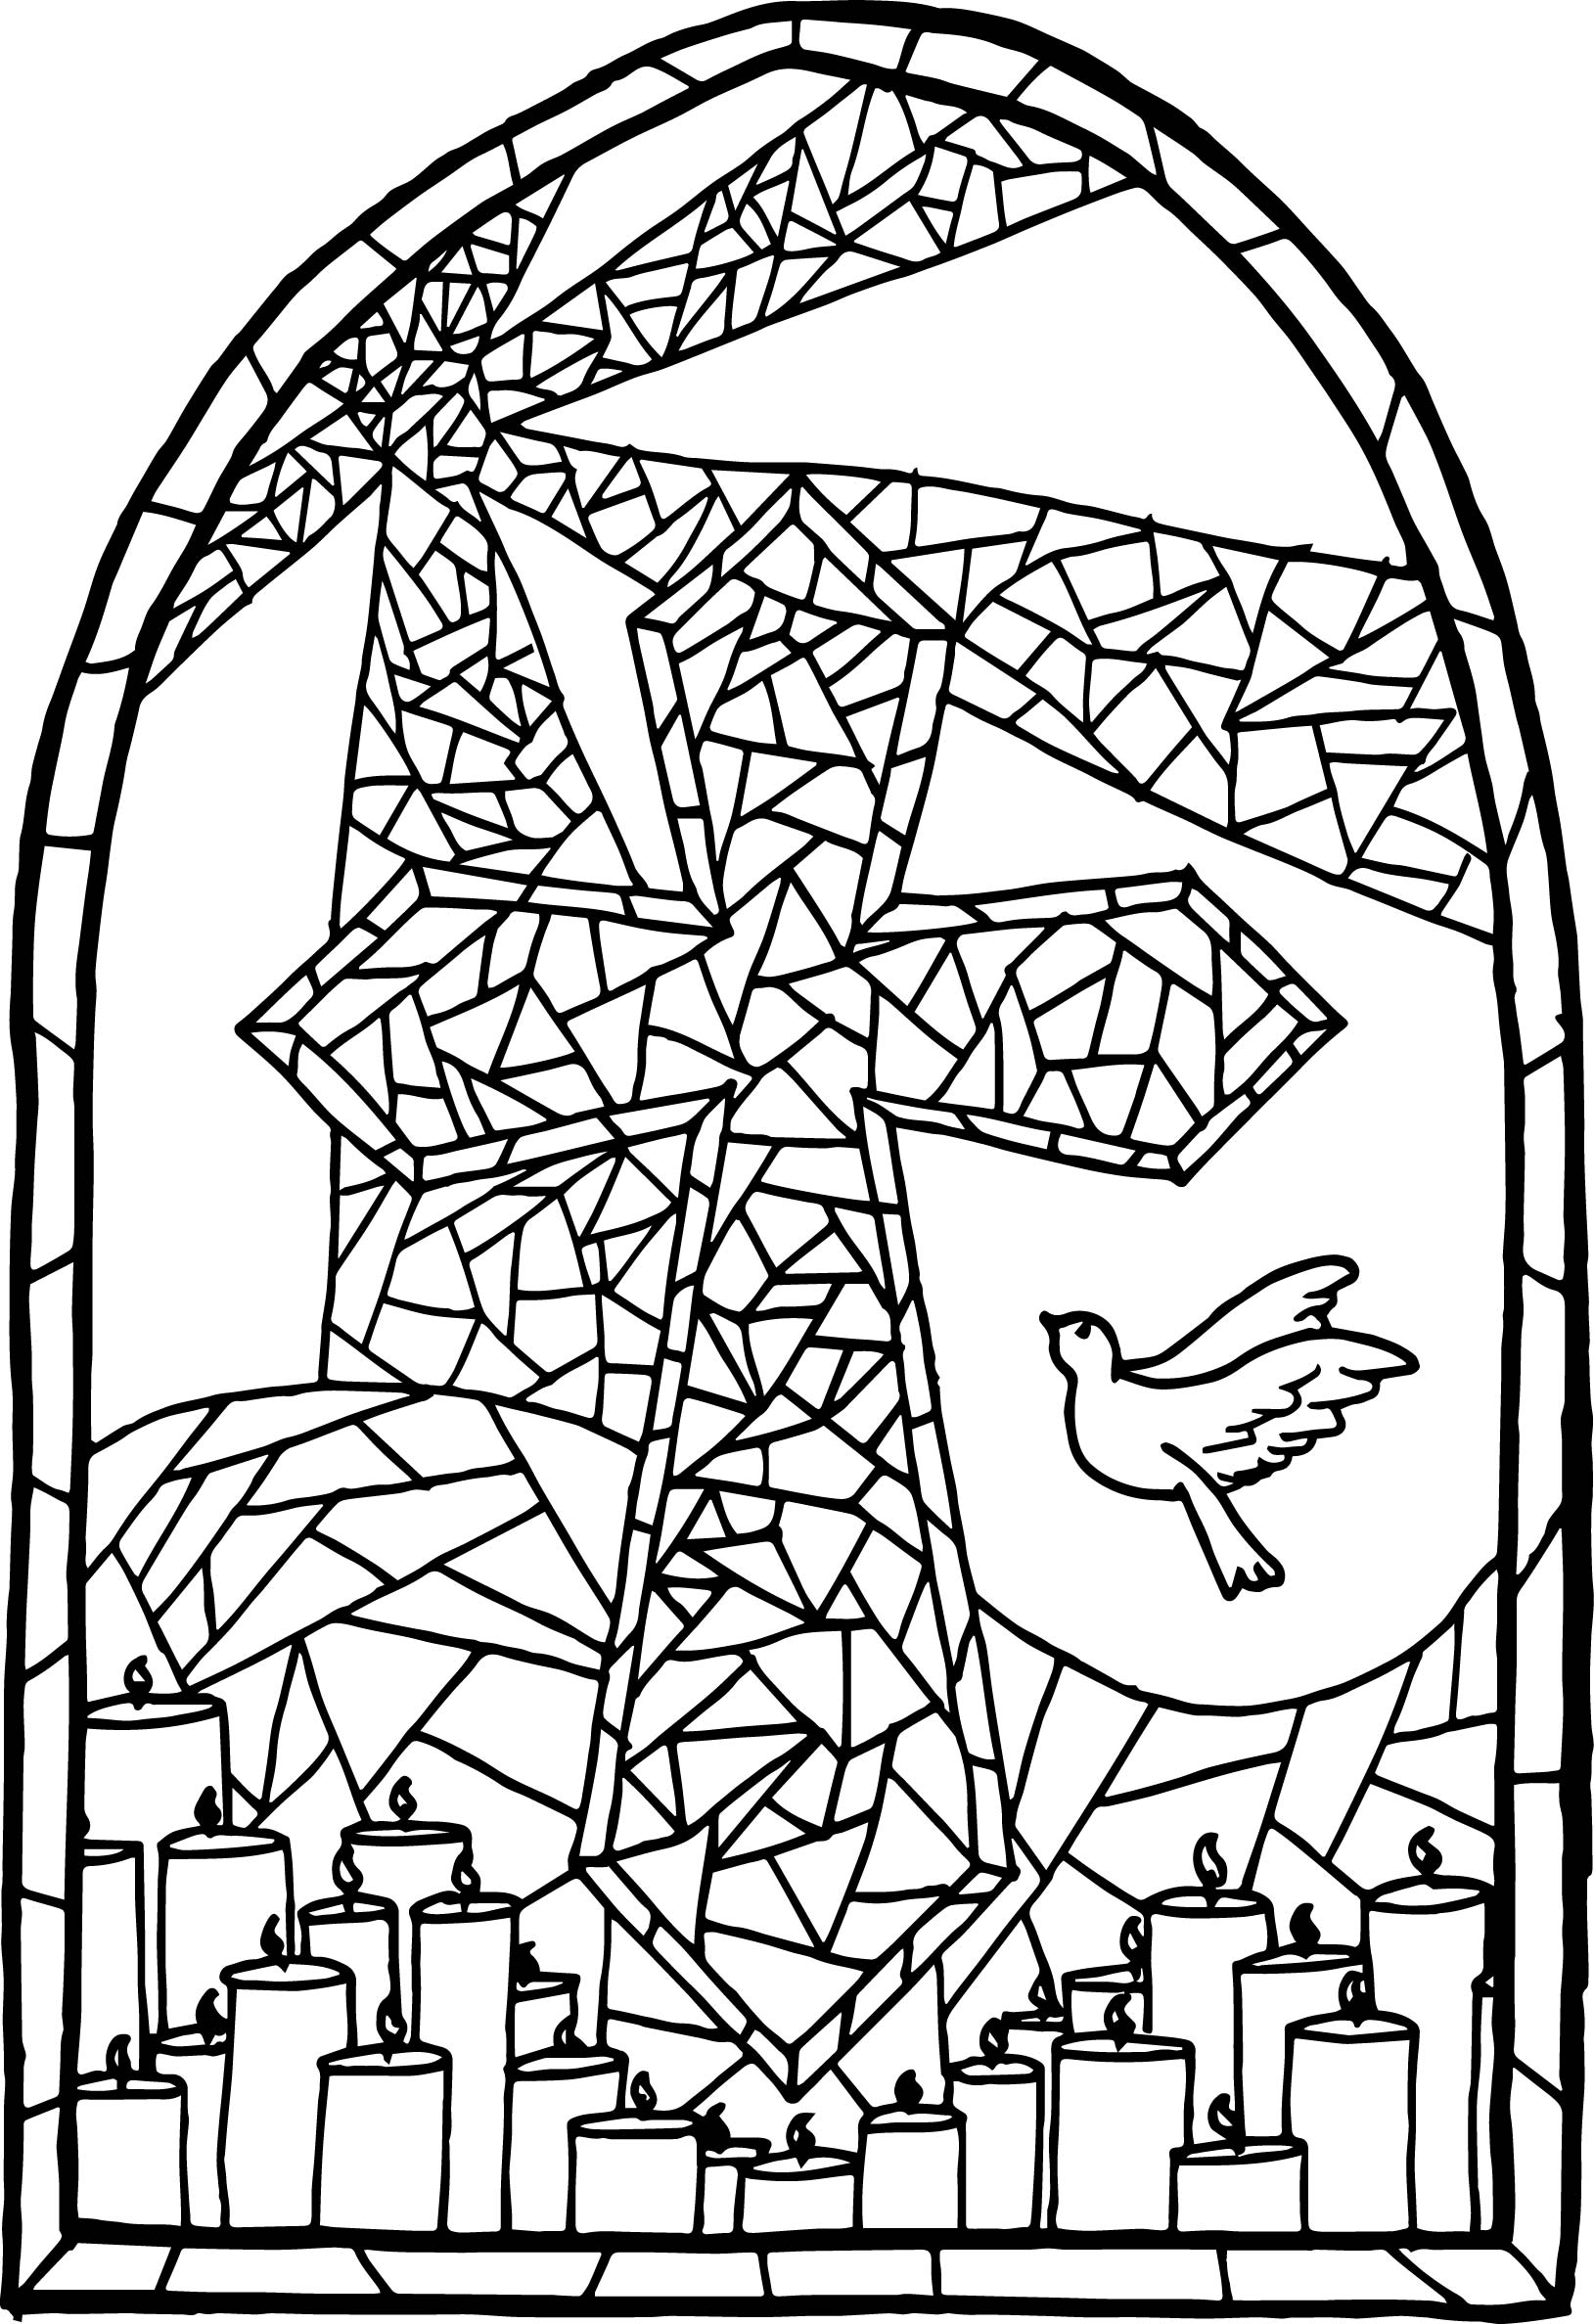 Pokemon Stained Glass Coloring Page digital Download | Etsy | 2375x1629